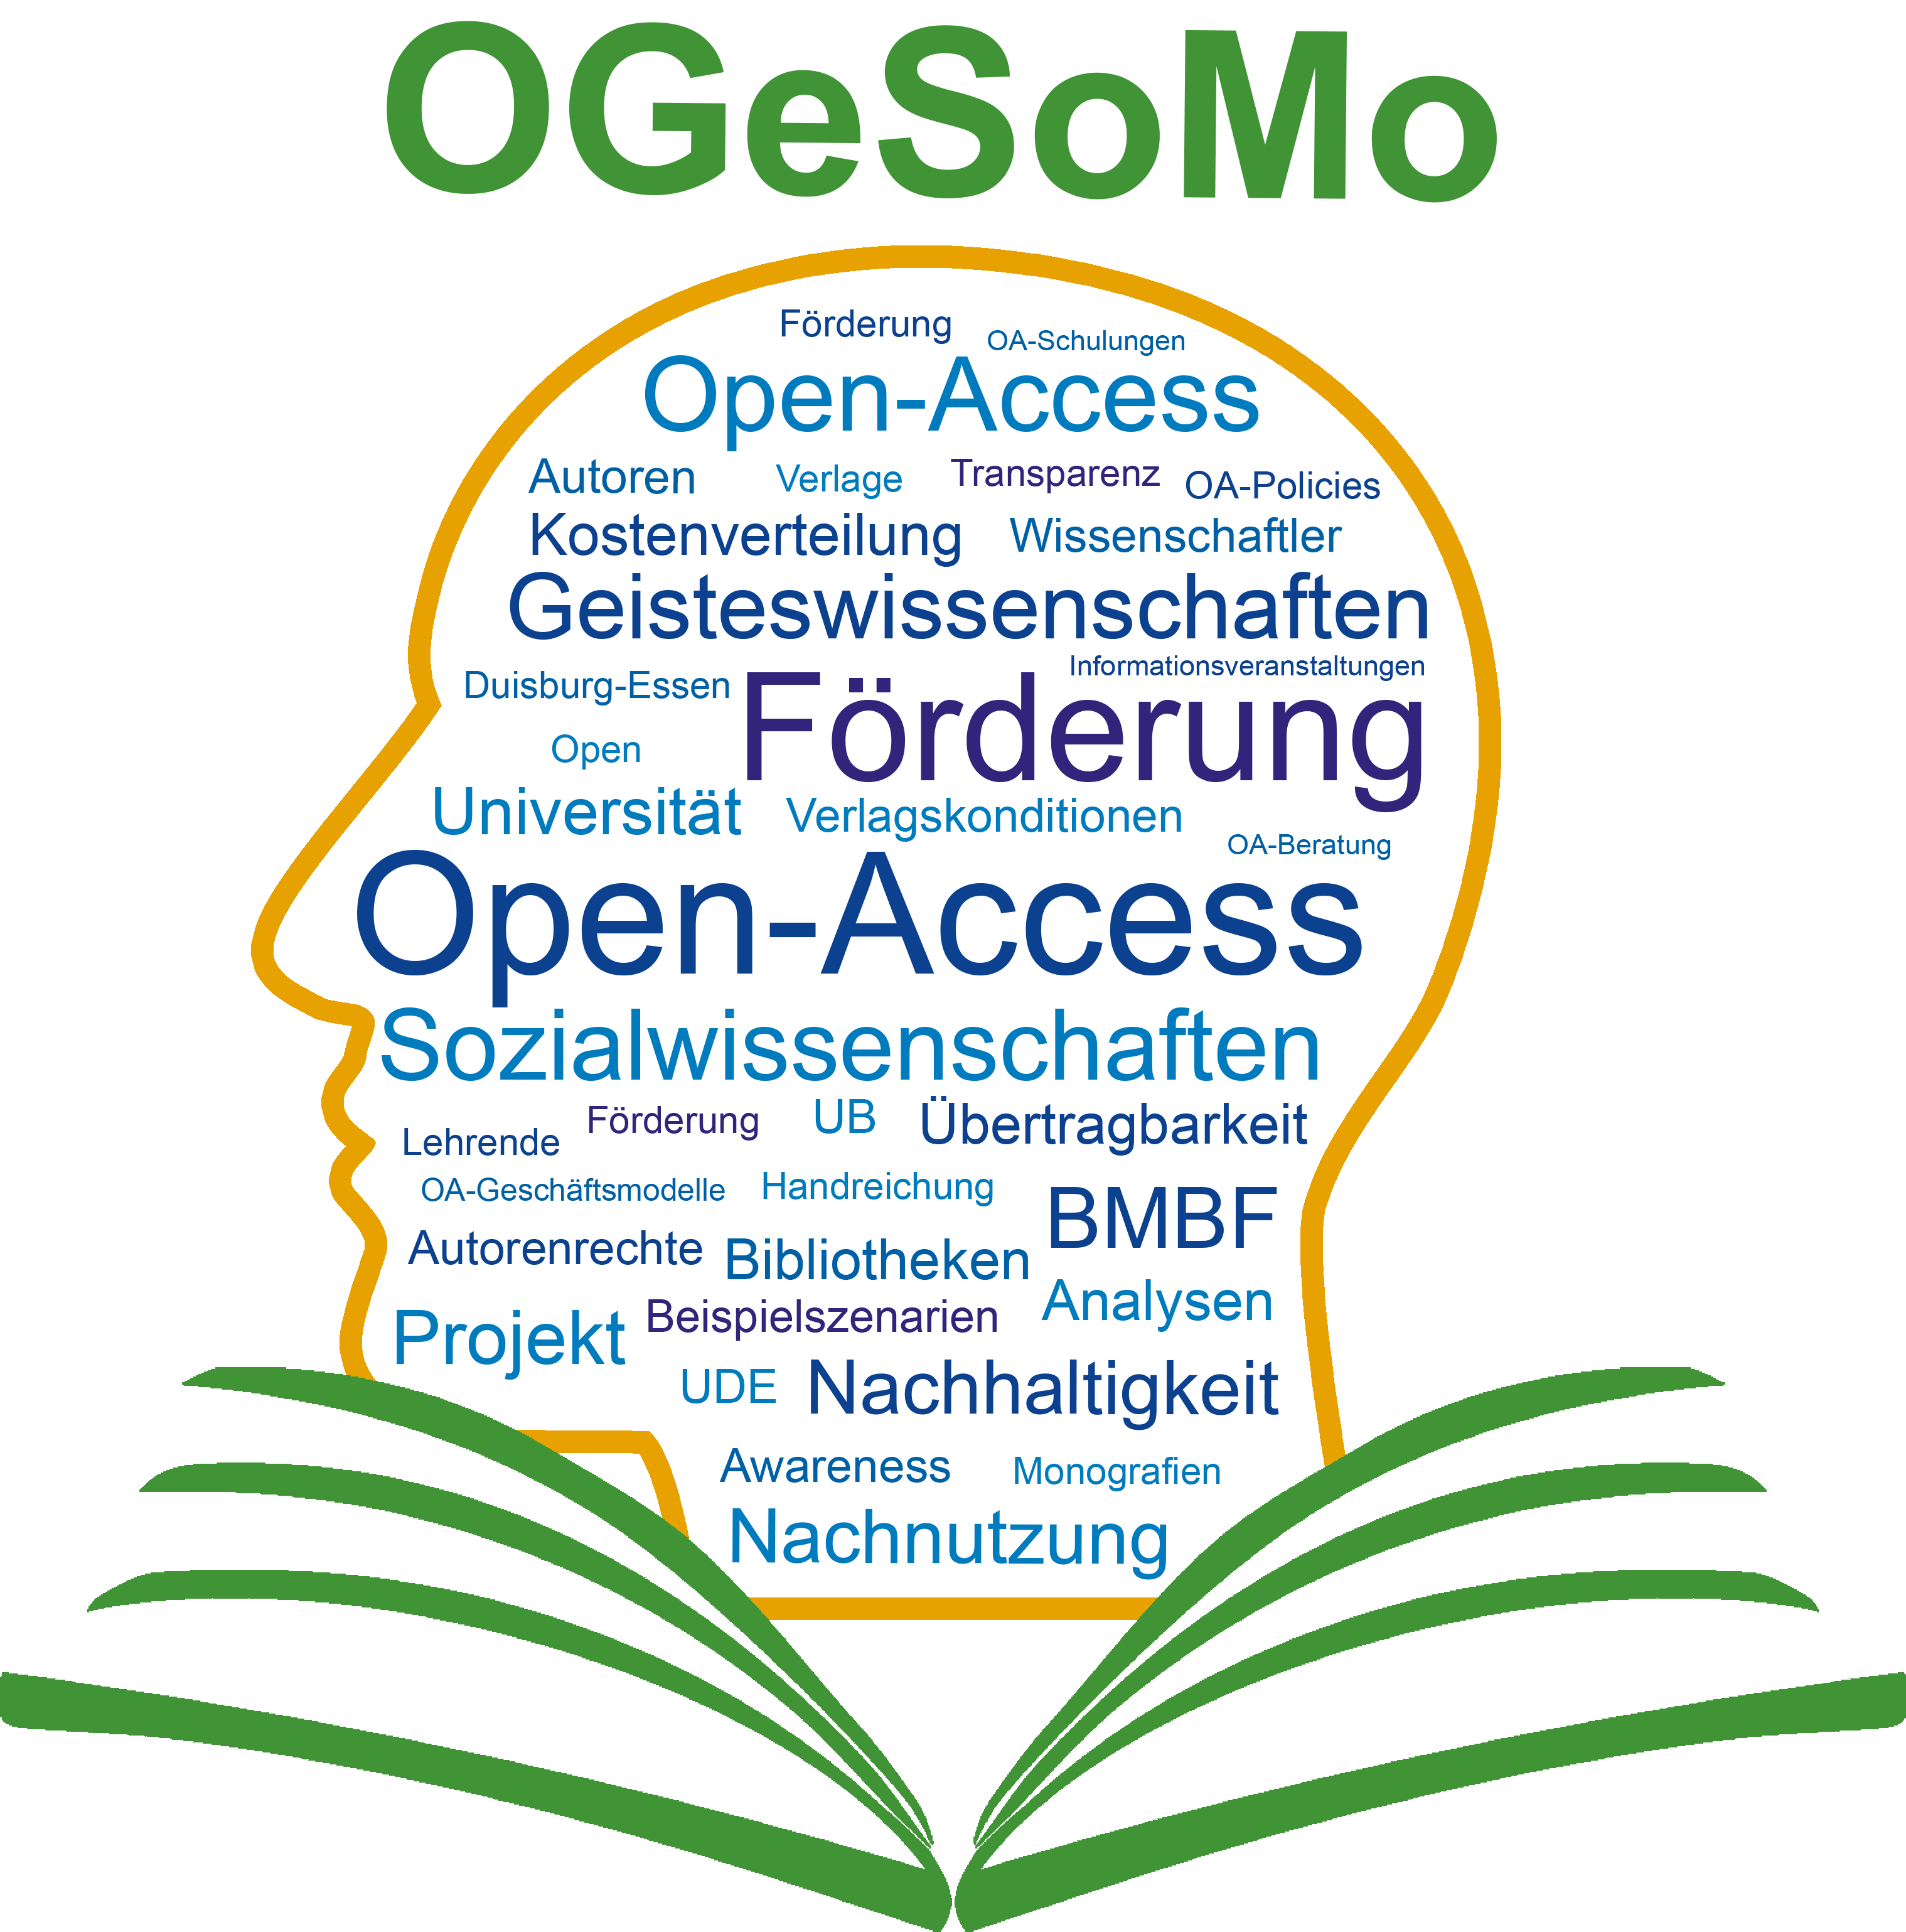 Open-Access-Monografien: Alles Open – Chance oder Risiko?